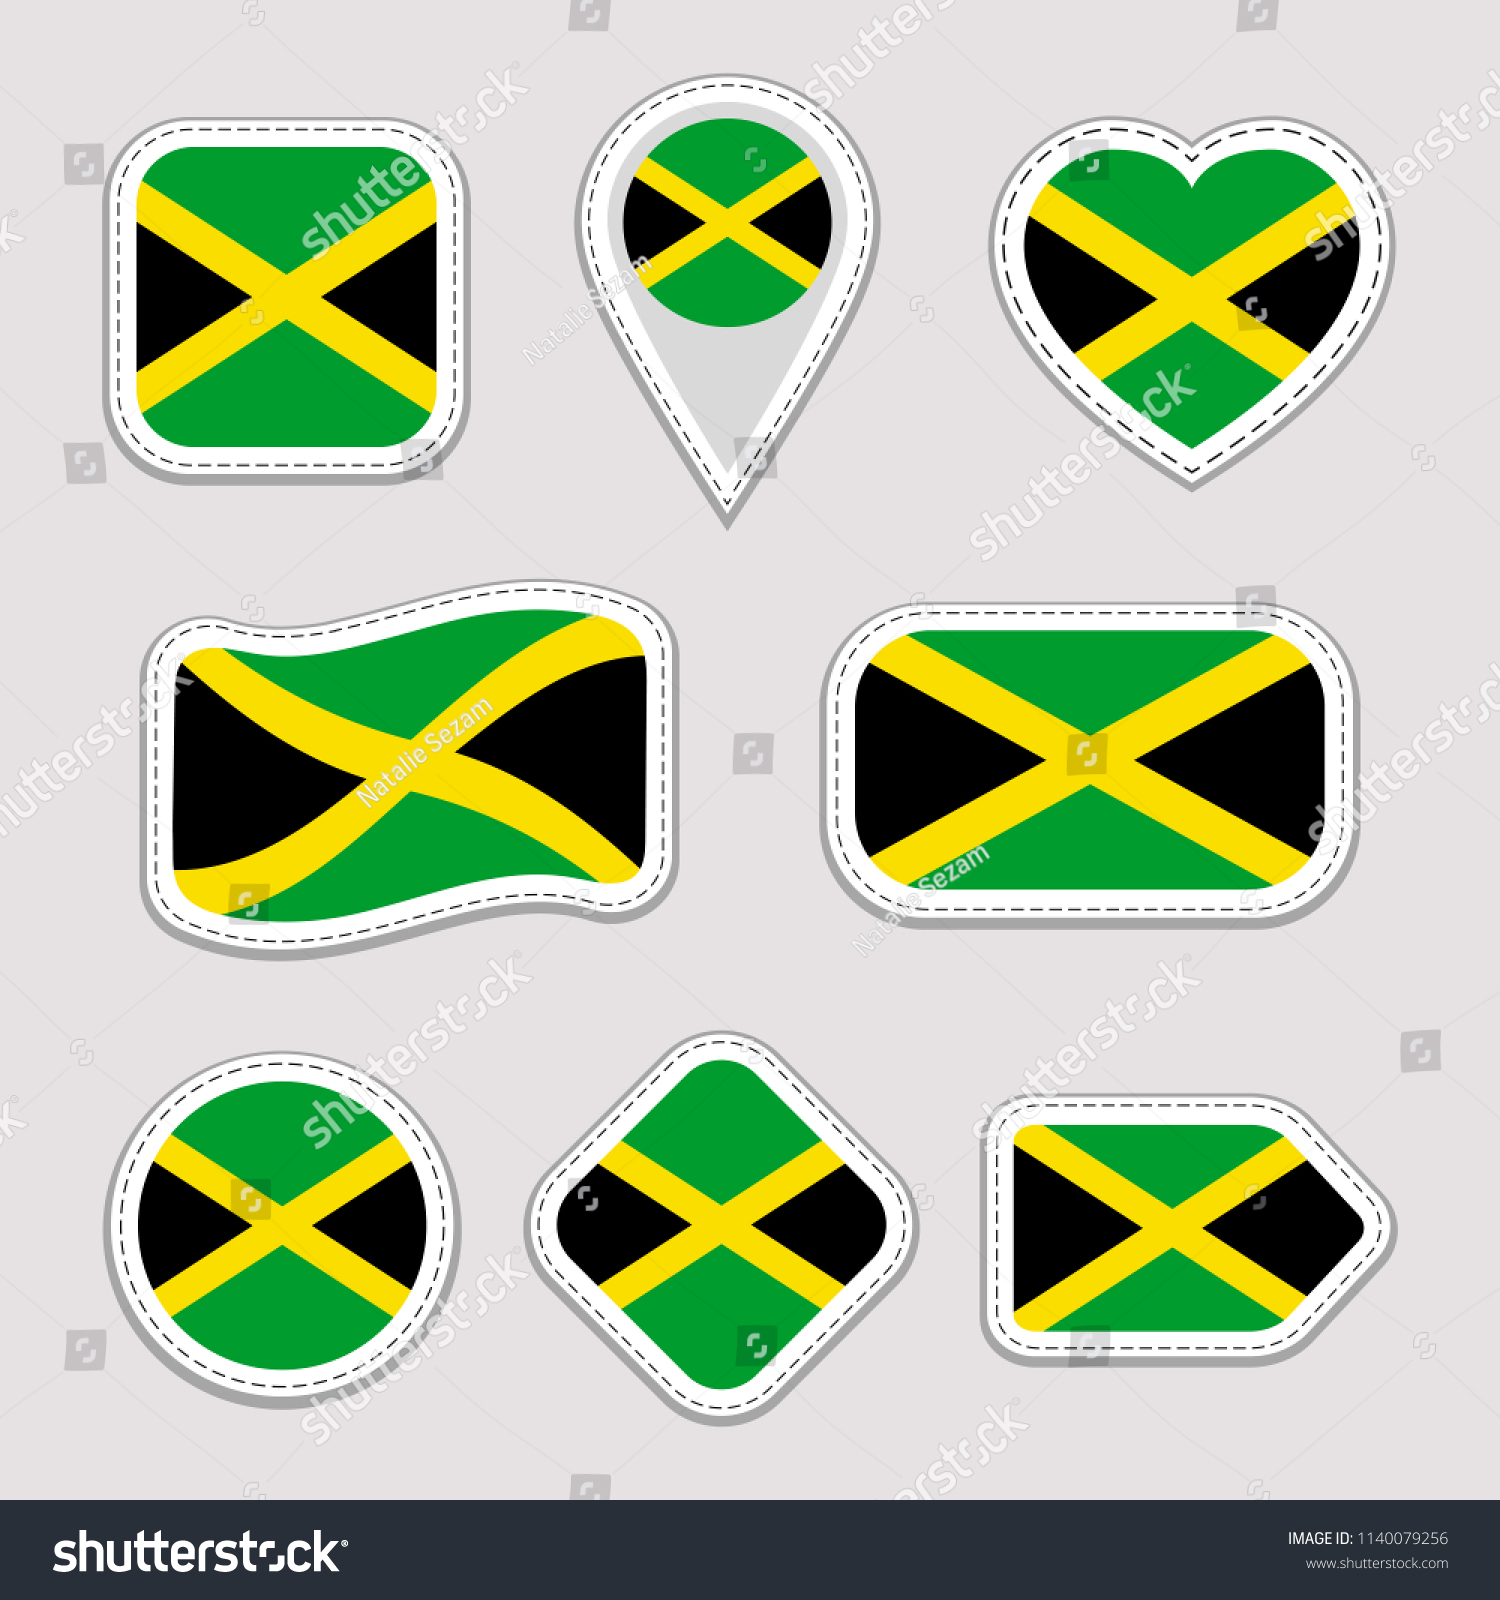 Jamaica flag vector set jamaican national flags stickers collection isolated geometric icons web